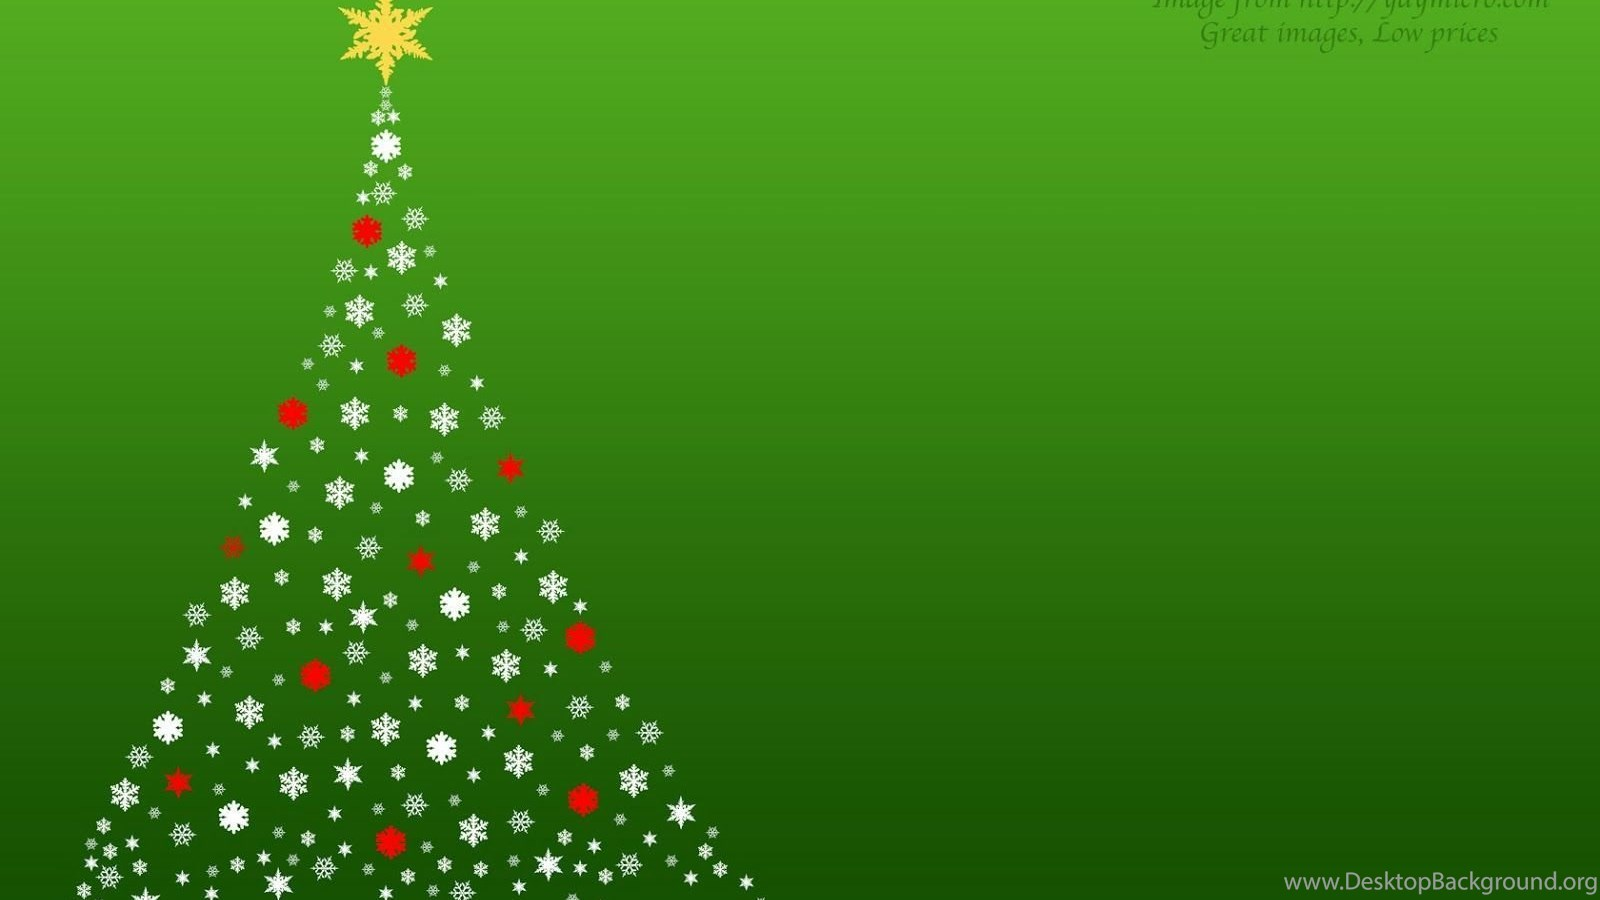 Christmas Background Images Hd.Green Christmas Backgrounds Hd Wallpapers Hd Wallpapers Blog